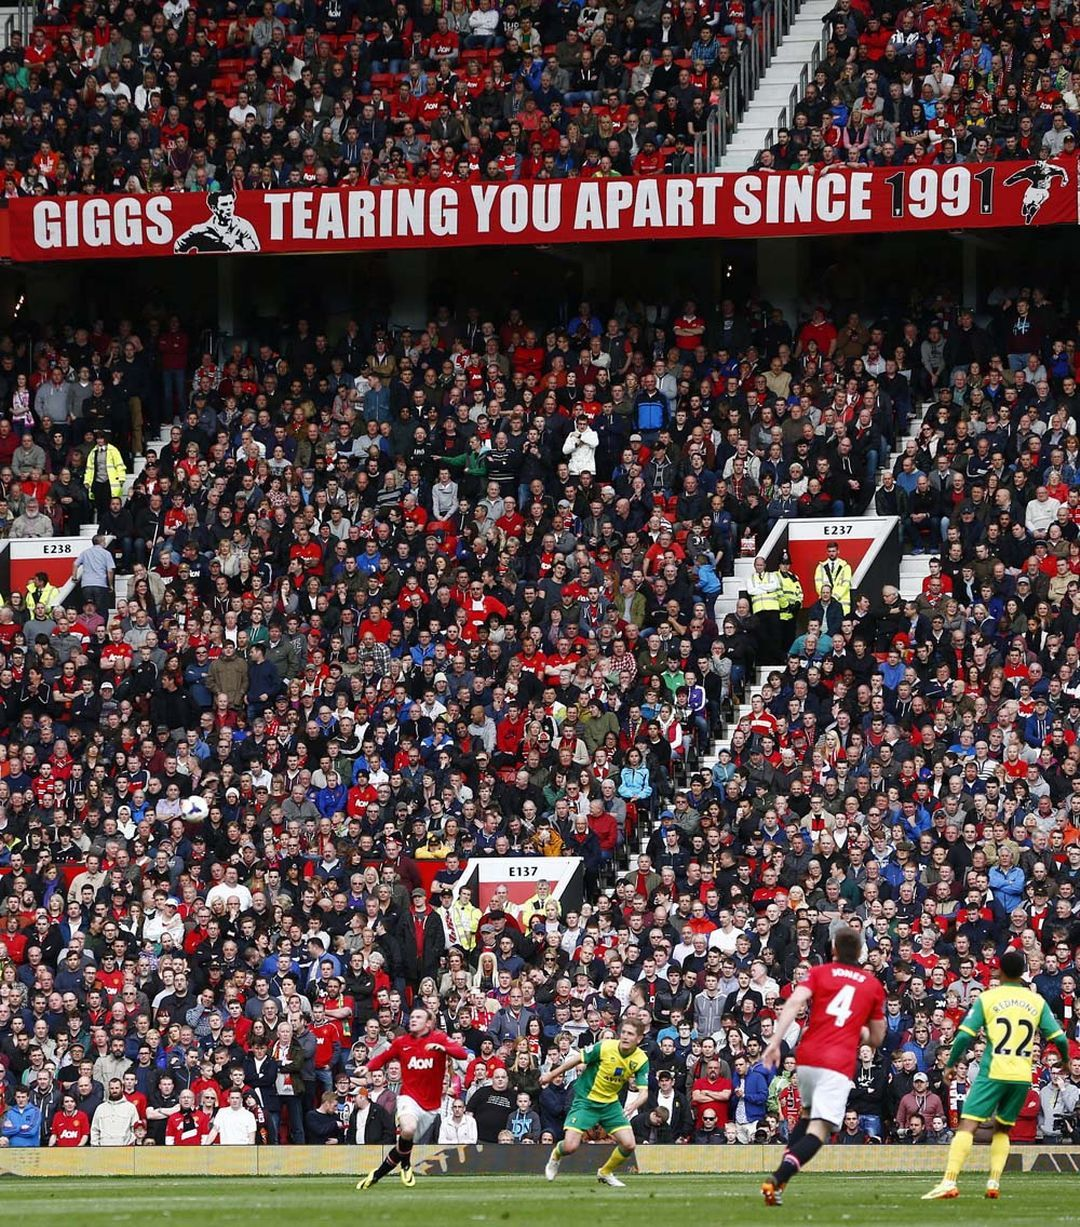 Man United 4 0 Norwich Red Devils Record Easy Win As Ryan Giggs Makes Managerial Bow Manchester United Football Club Ryan Giggs Manchester United Football